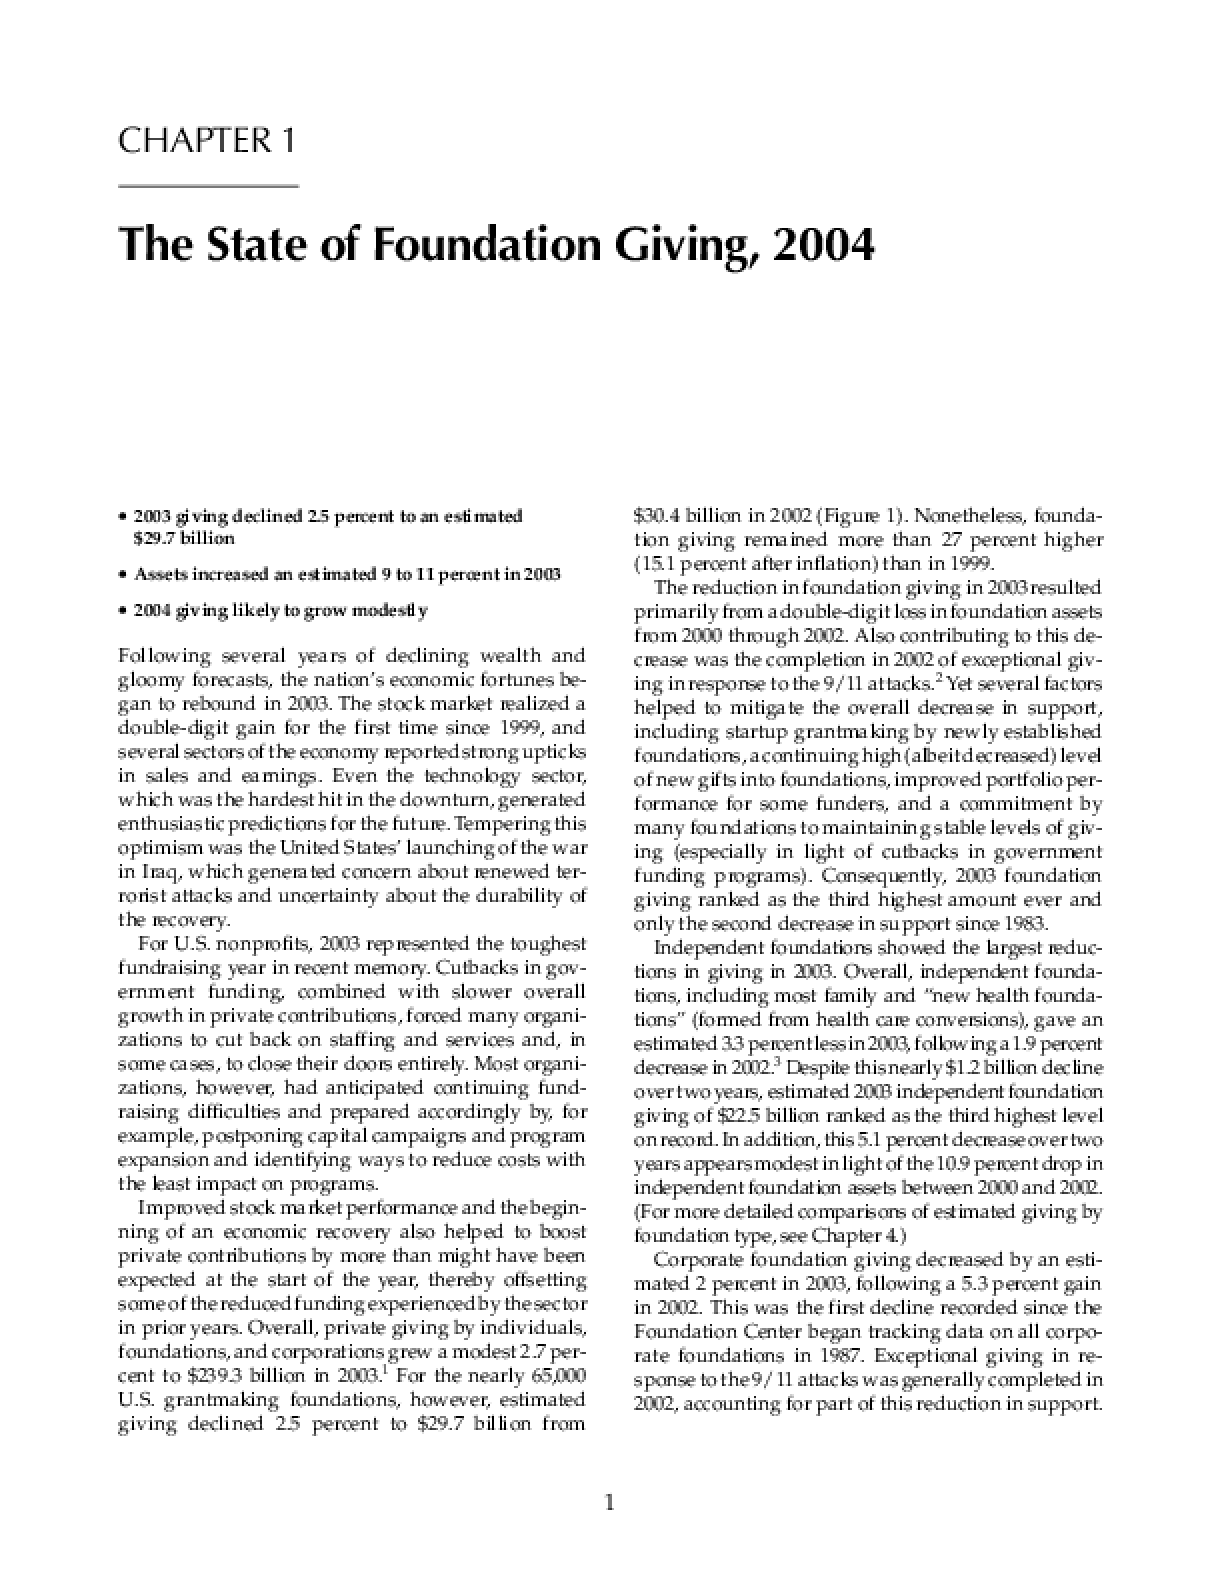 The State of Foundation Giving, 2004